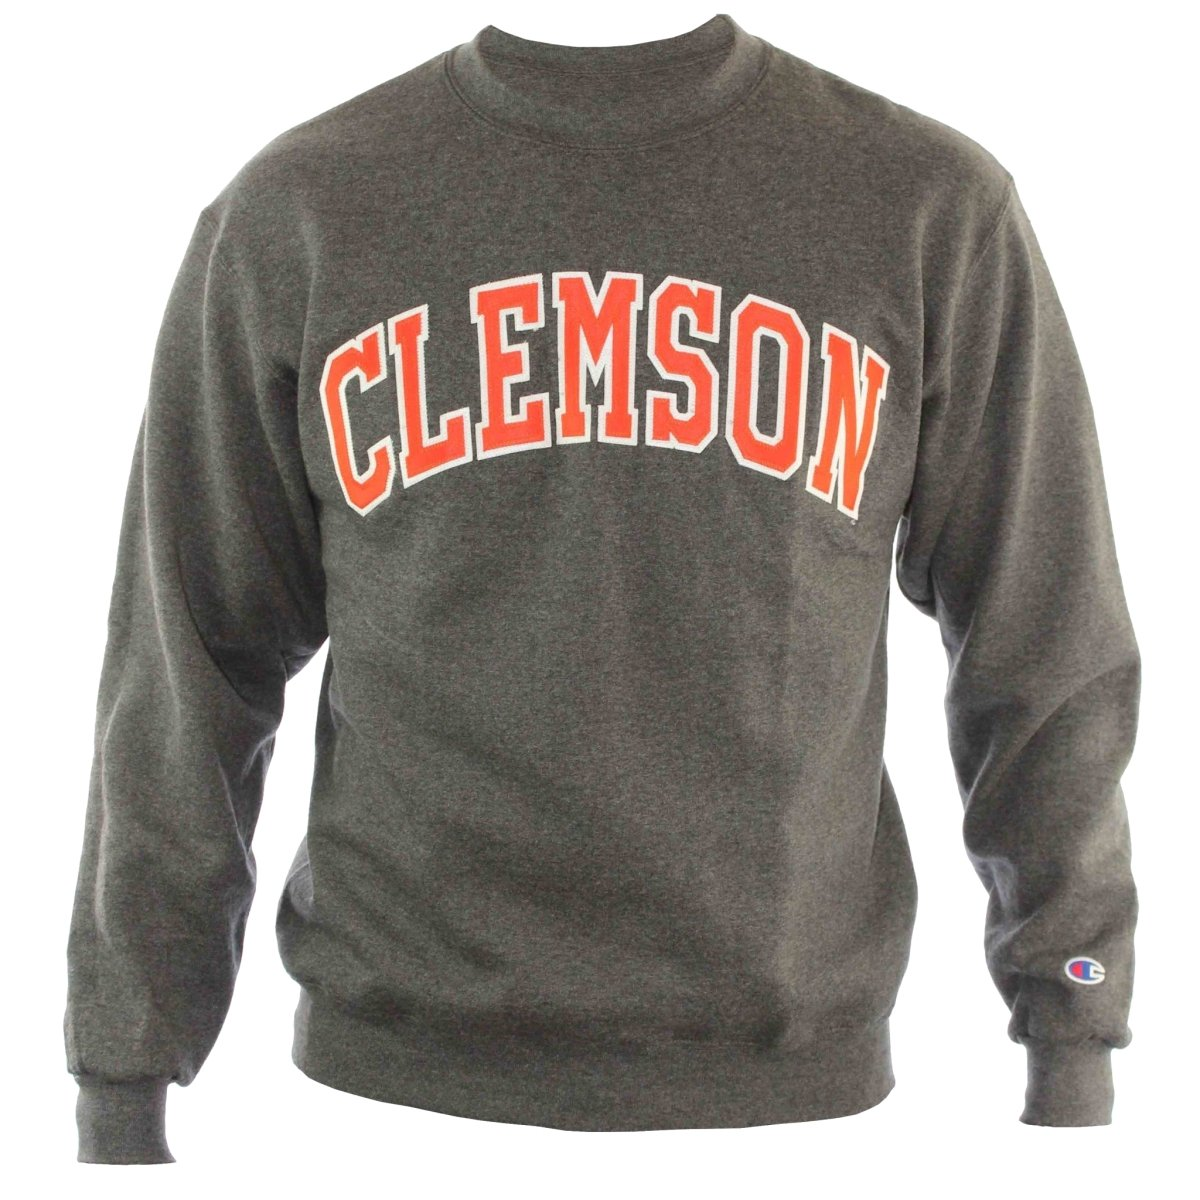 Champion Crew Fleece Tackle Twill Arch Clemson - Mr. Knickerbocker